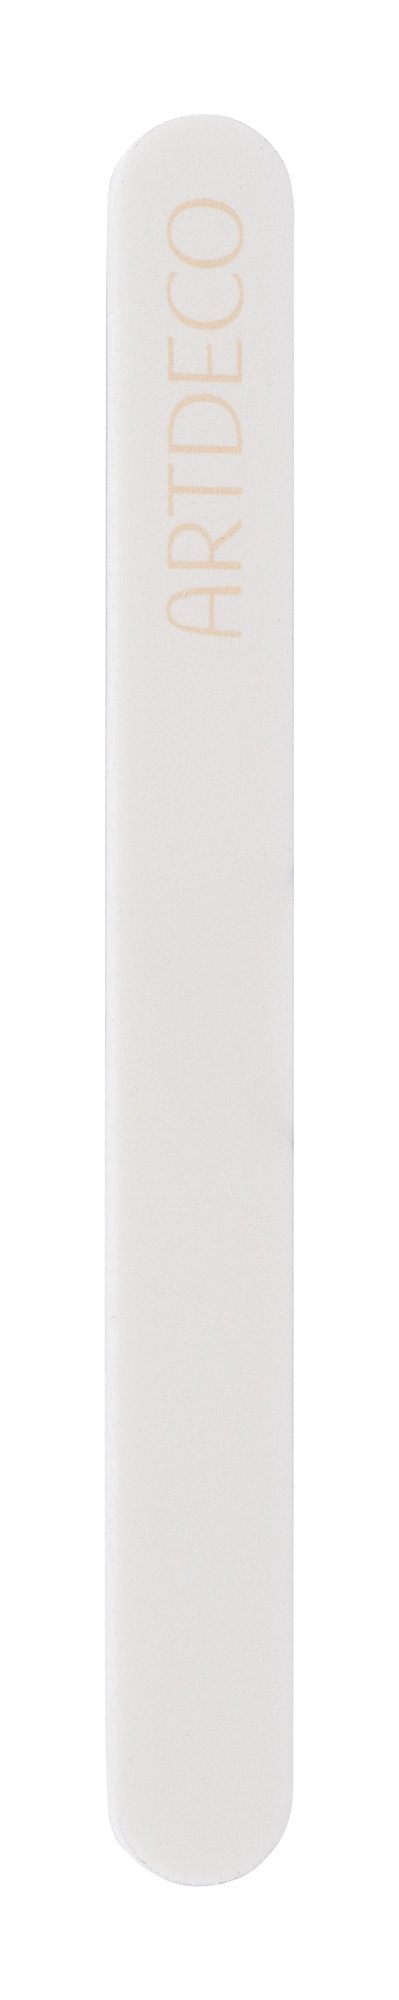 Artdeco Nail Care Nail File 1ml